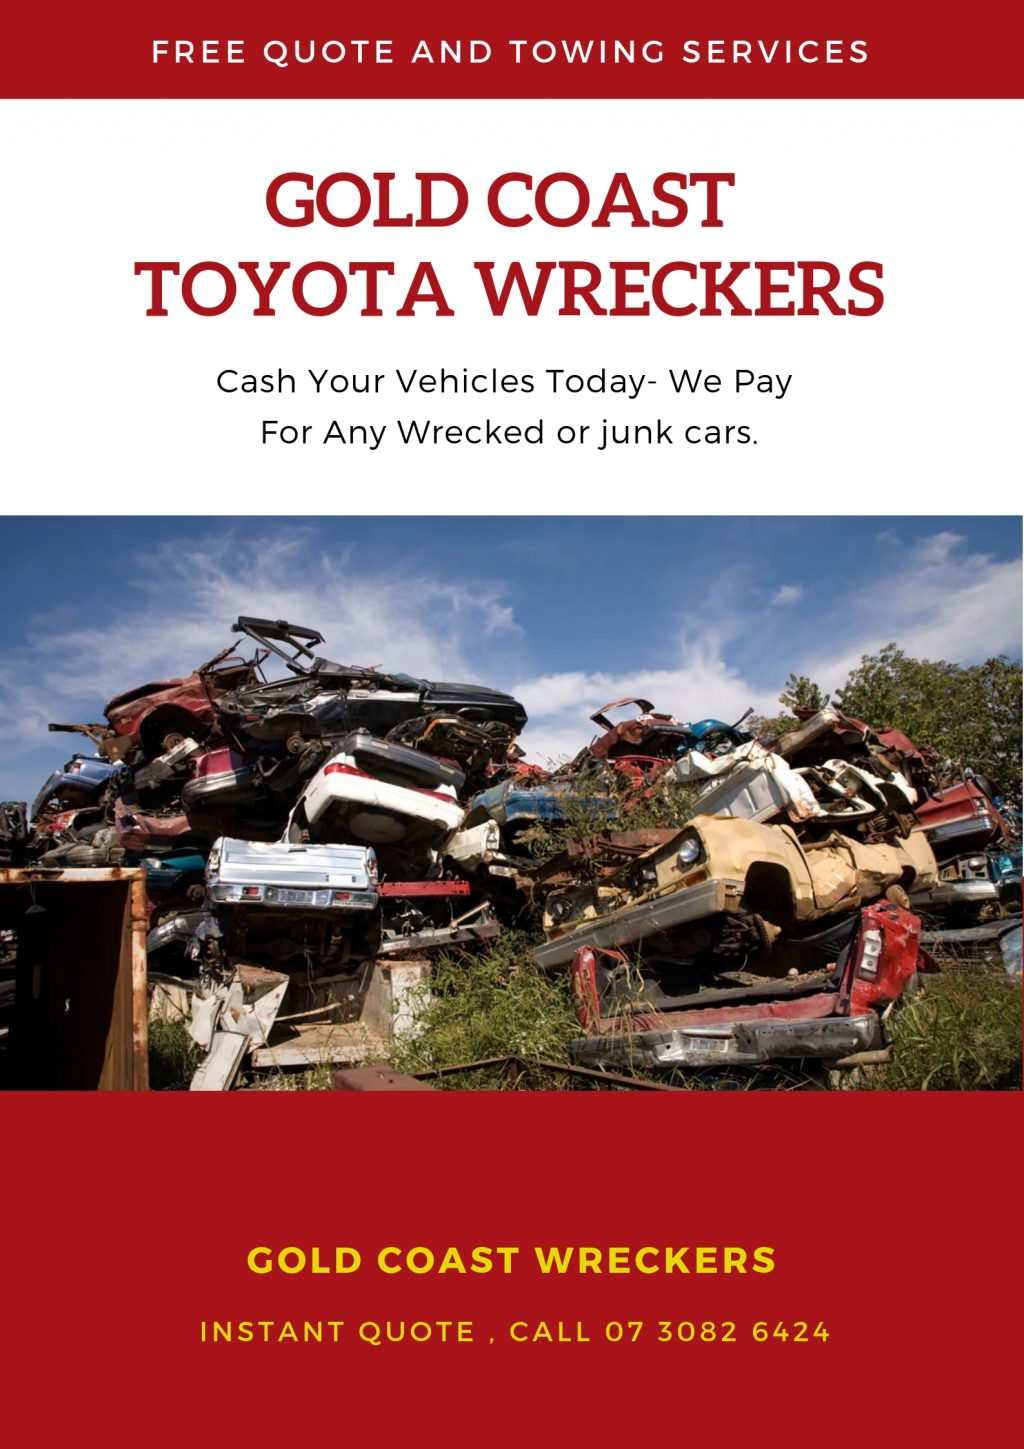 Gold Coast Toyota Wreckers.jpg